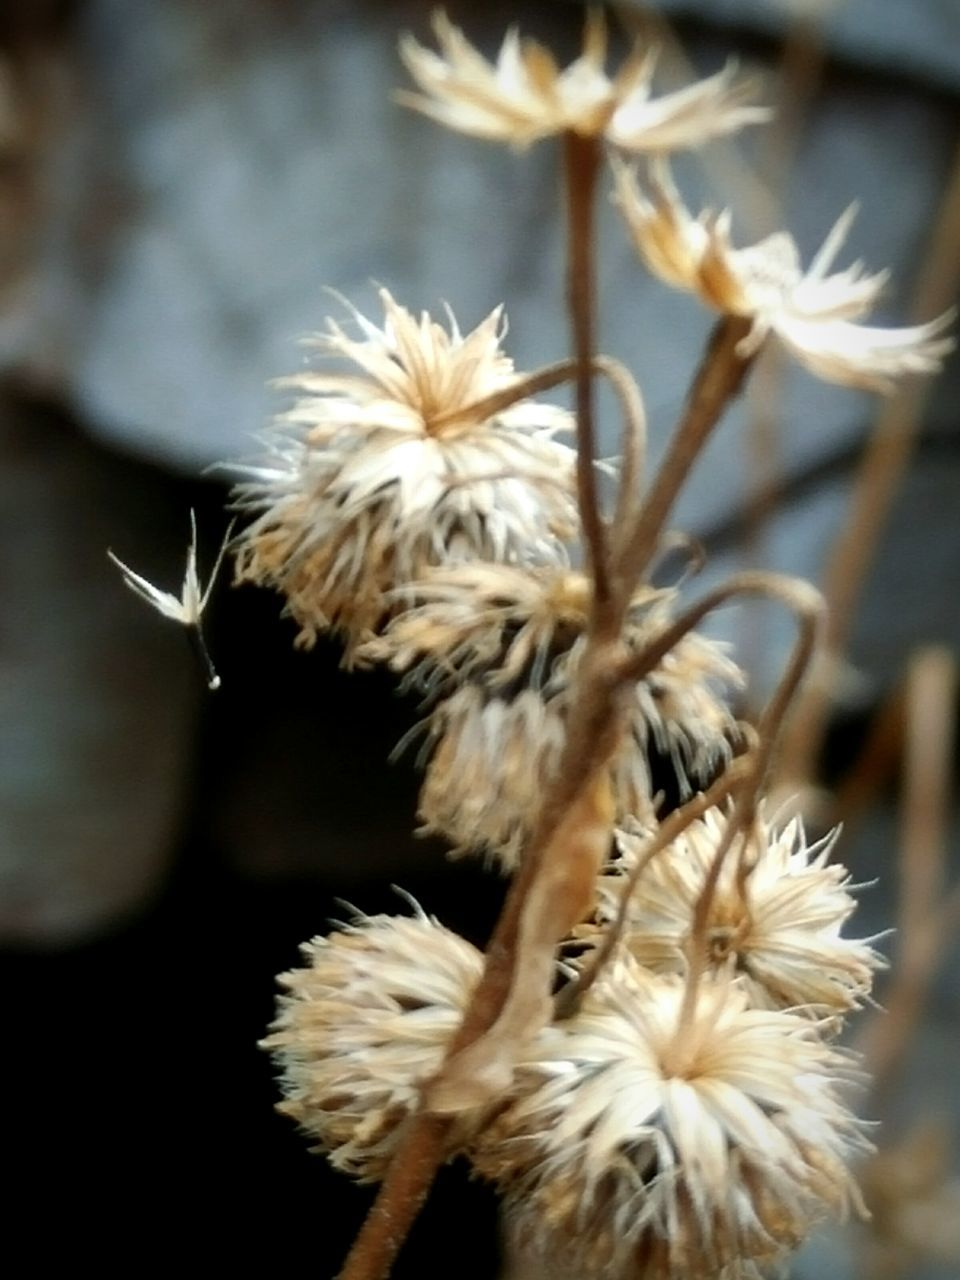 flower, nature, fragility, close-up, plant, flower head, no people, growth, beauty in nature, outdoors, day, freshness